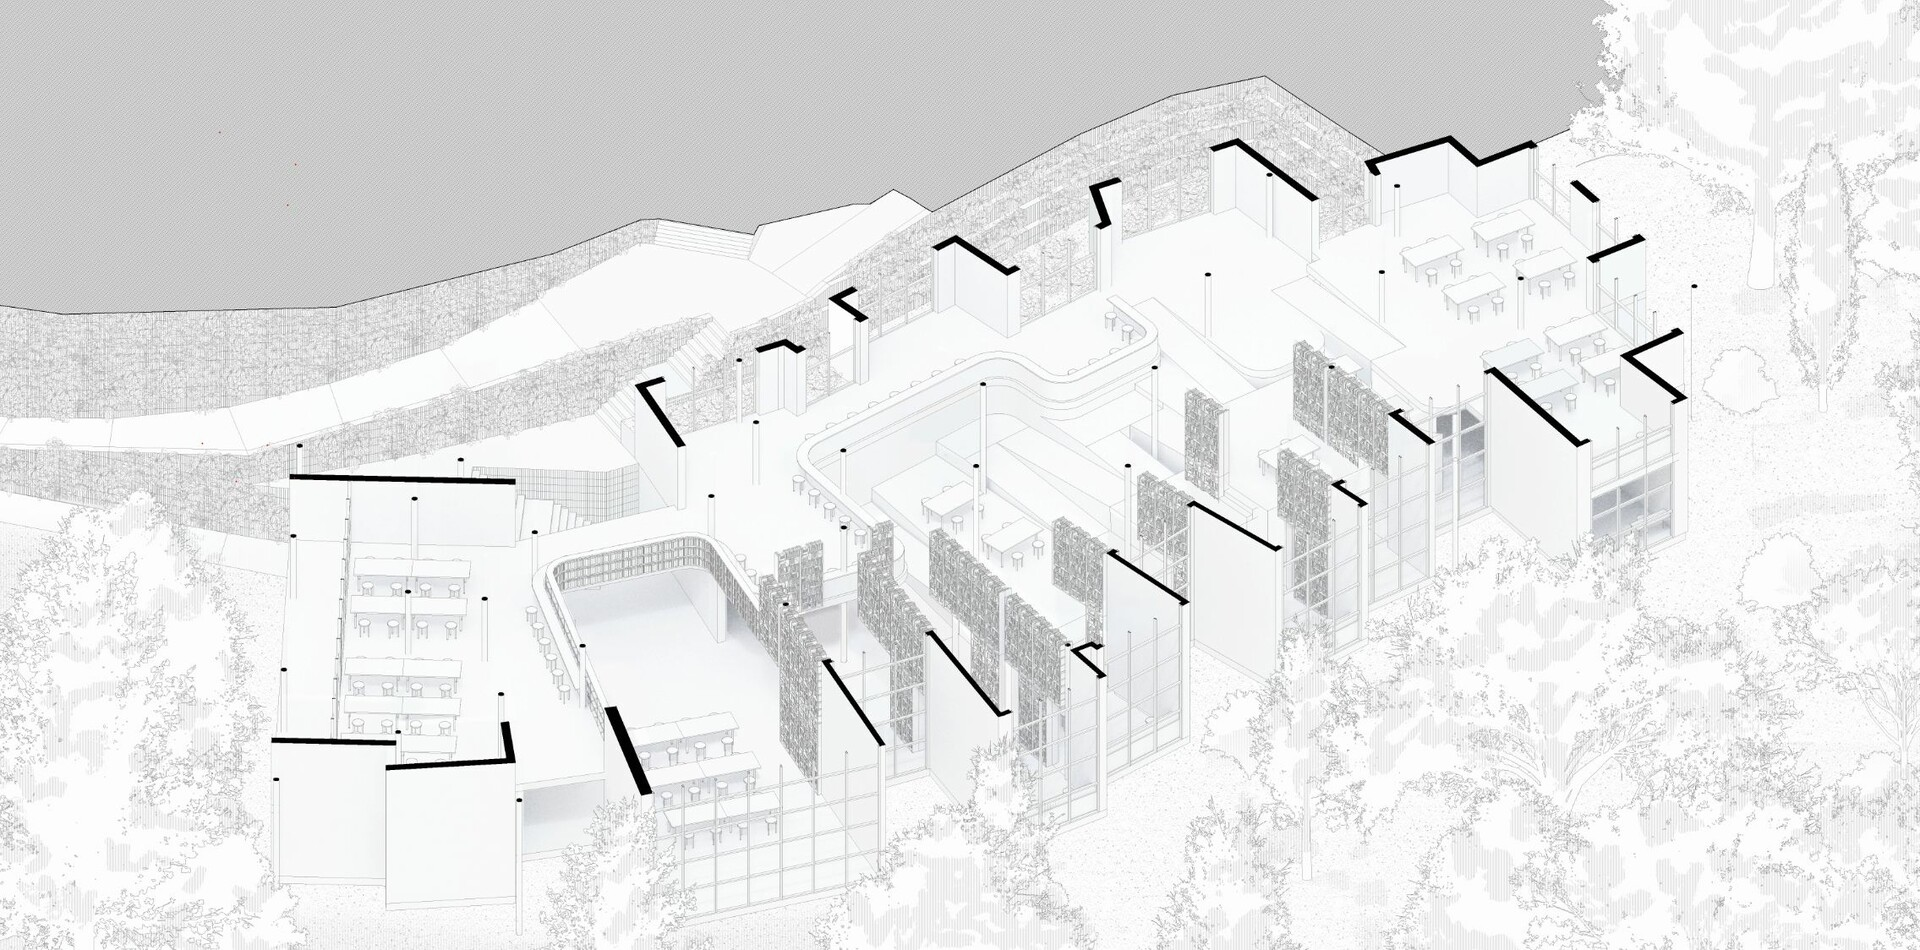 sectioned axonometric view